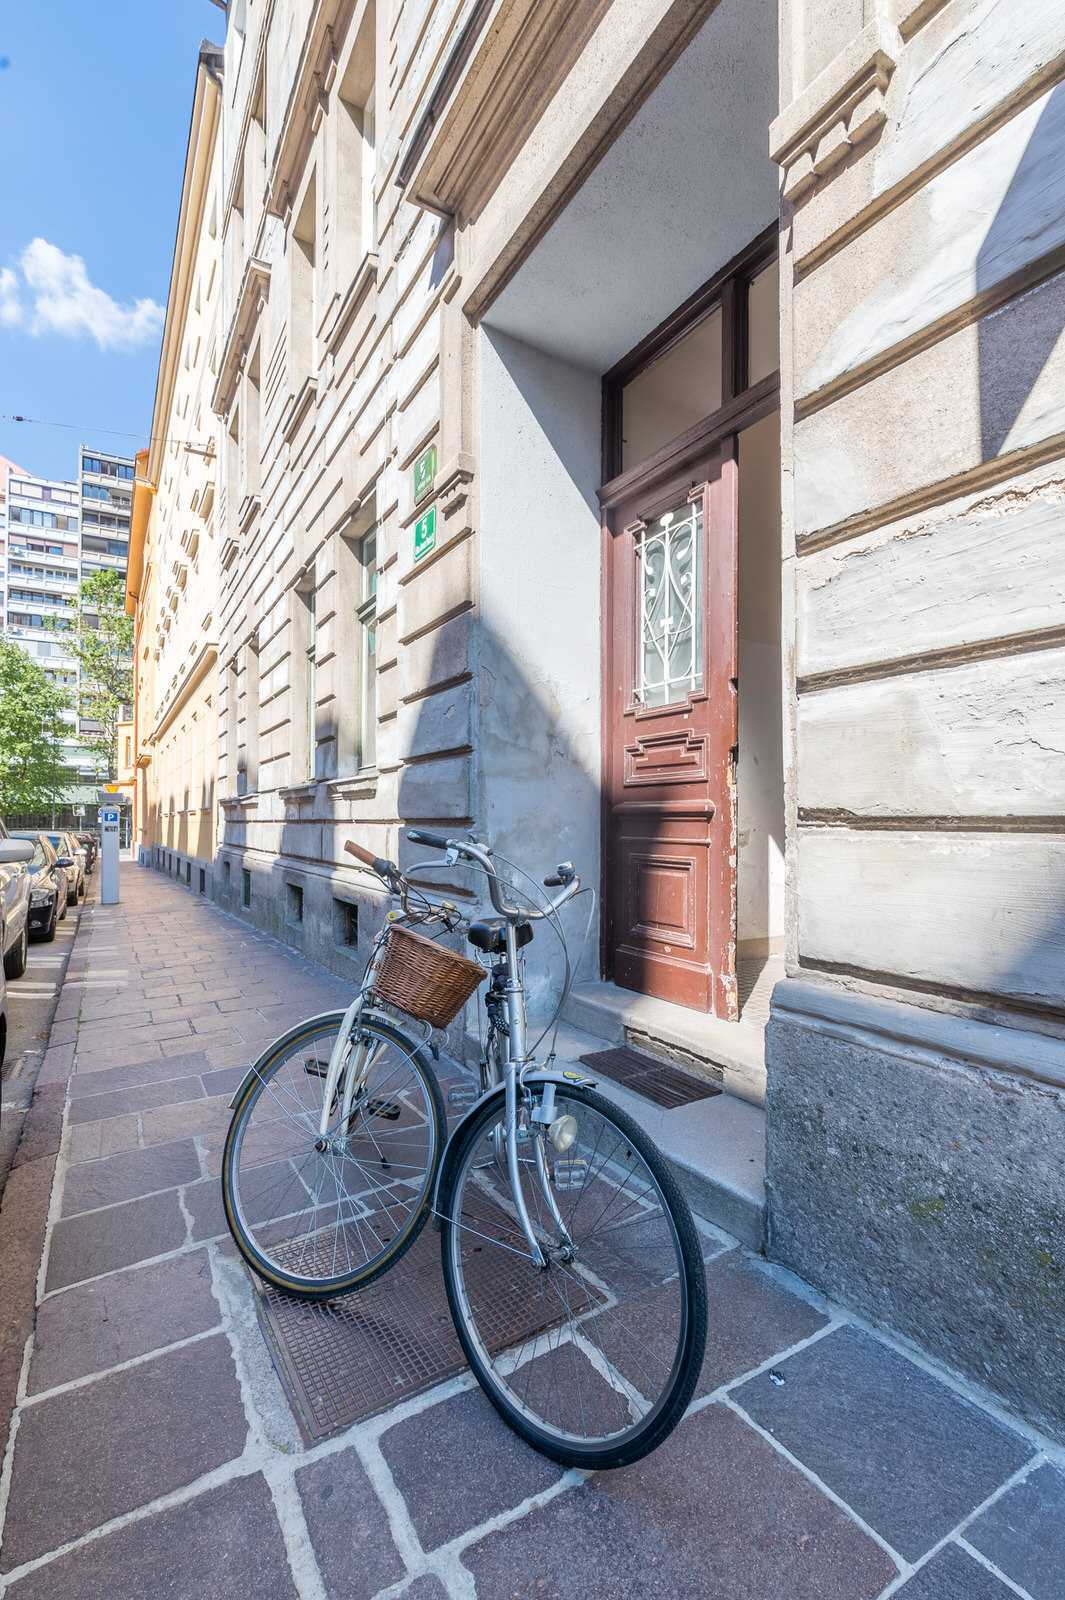 You can borrow one of the four bikes to explore Ljubljana like the locals.